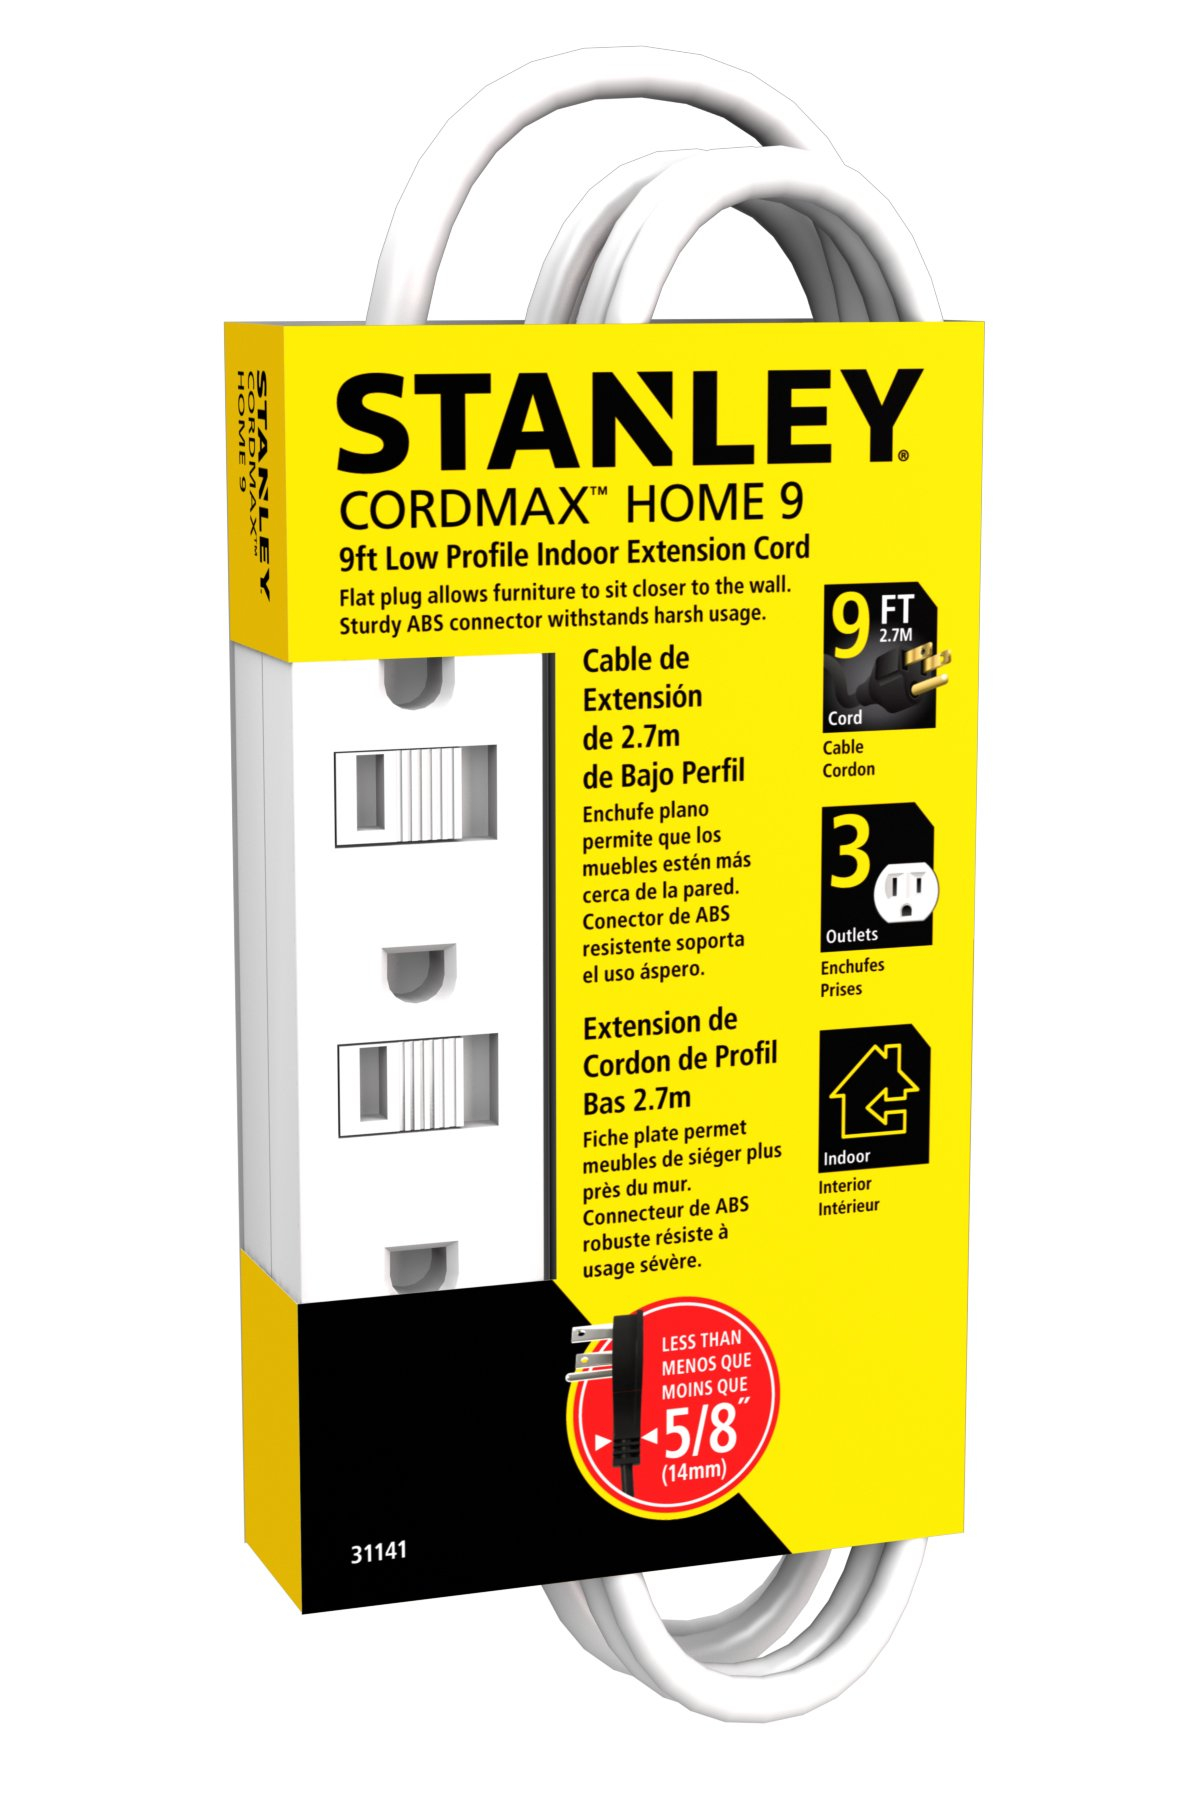 Stanley 31141 Cordmax Home 9 Grounded Low Profile 3-Outlet Indoor Extension Cord, 9Ft White,